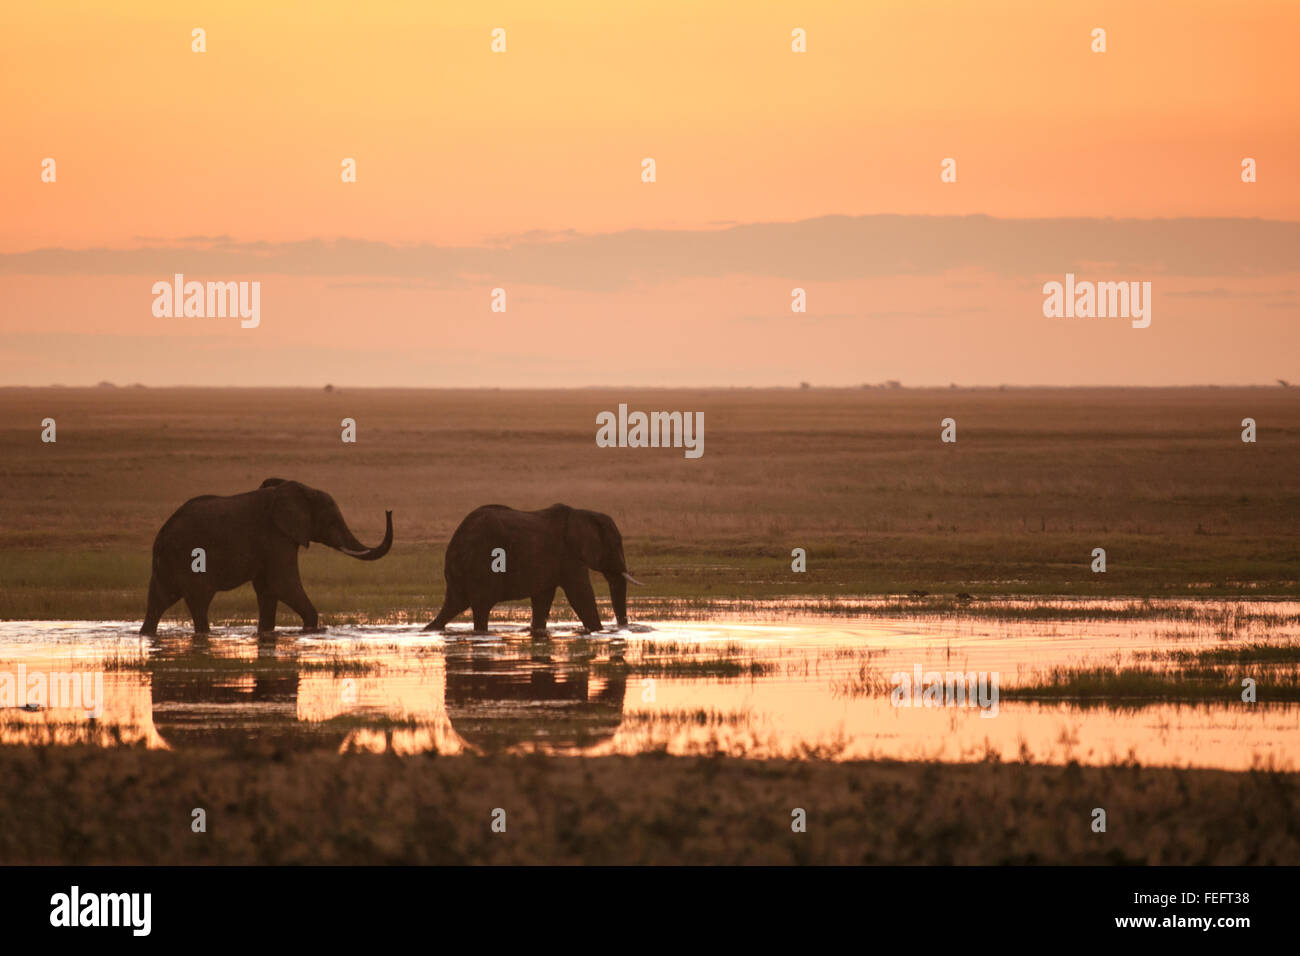 Two elephants in sunset - Stock Image